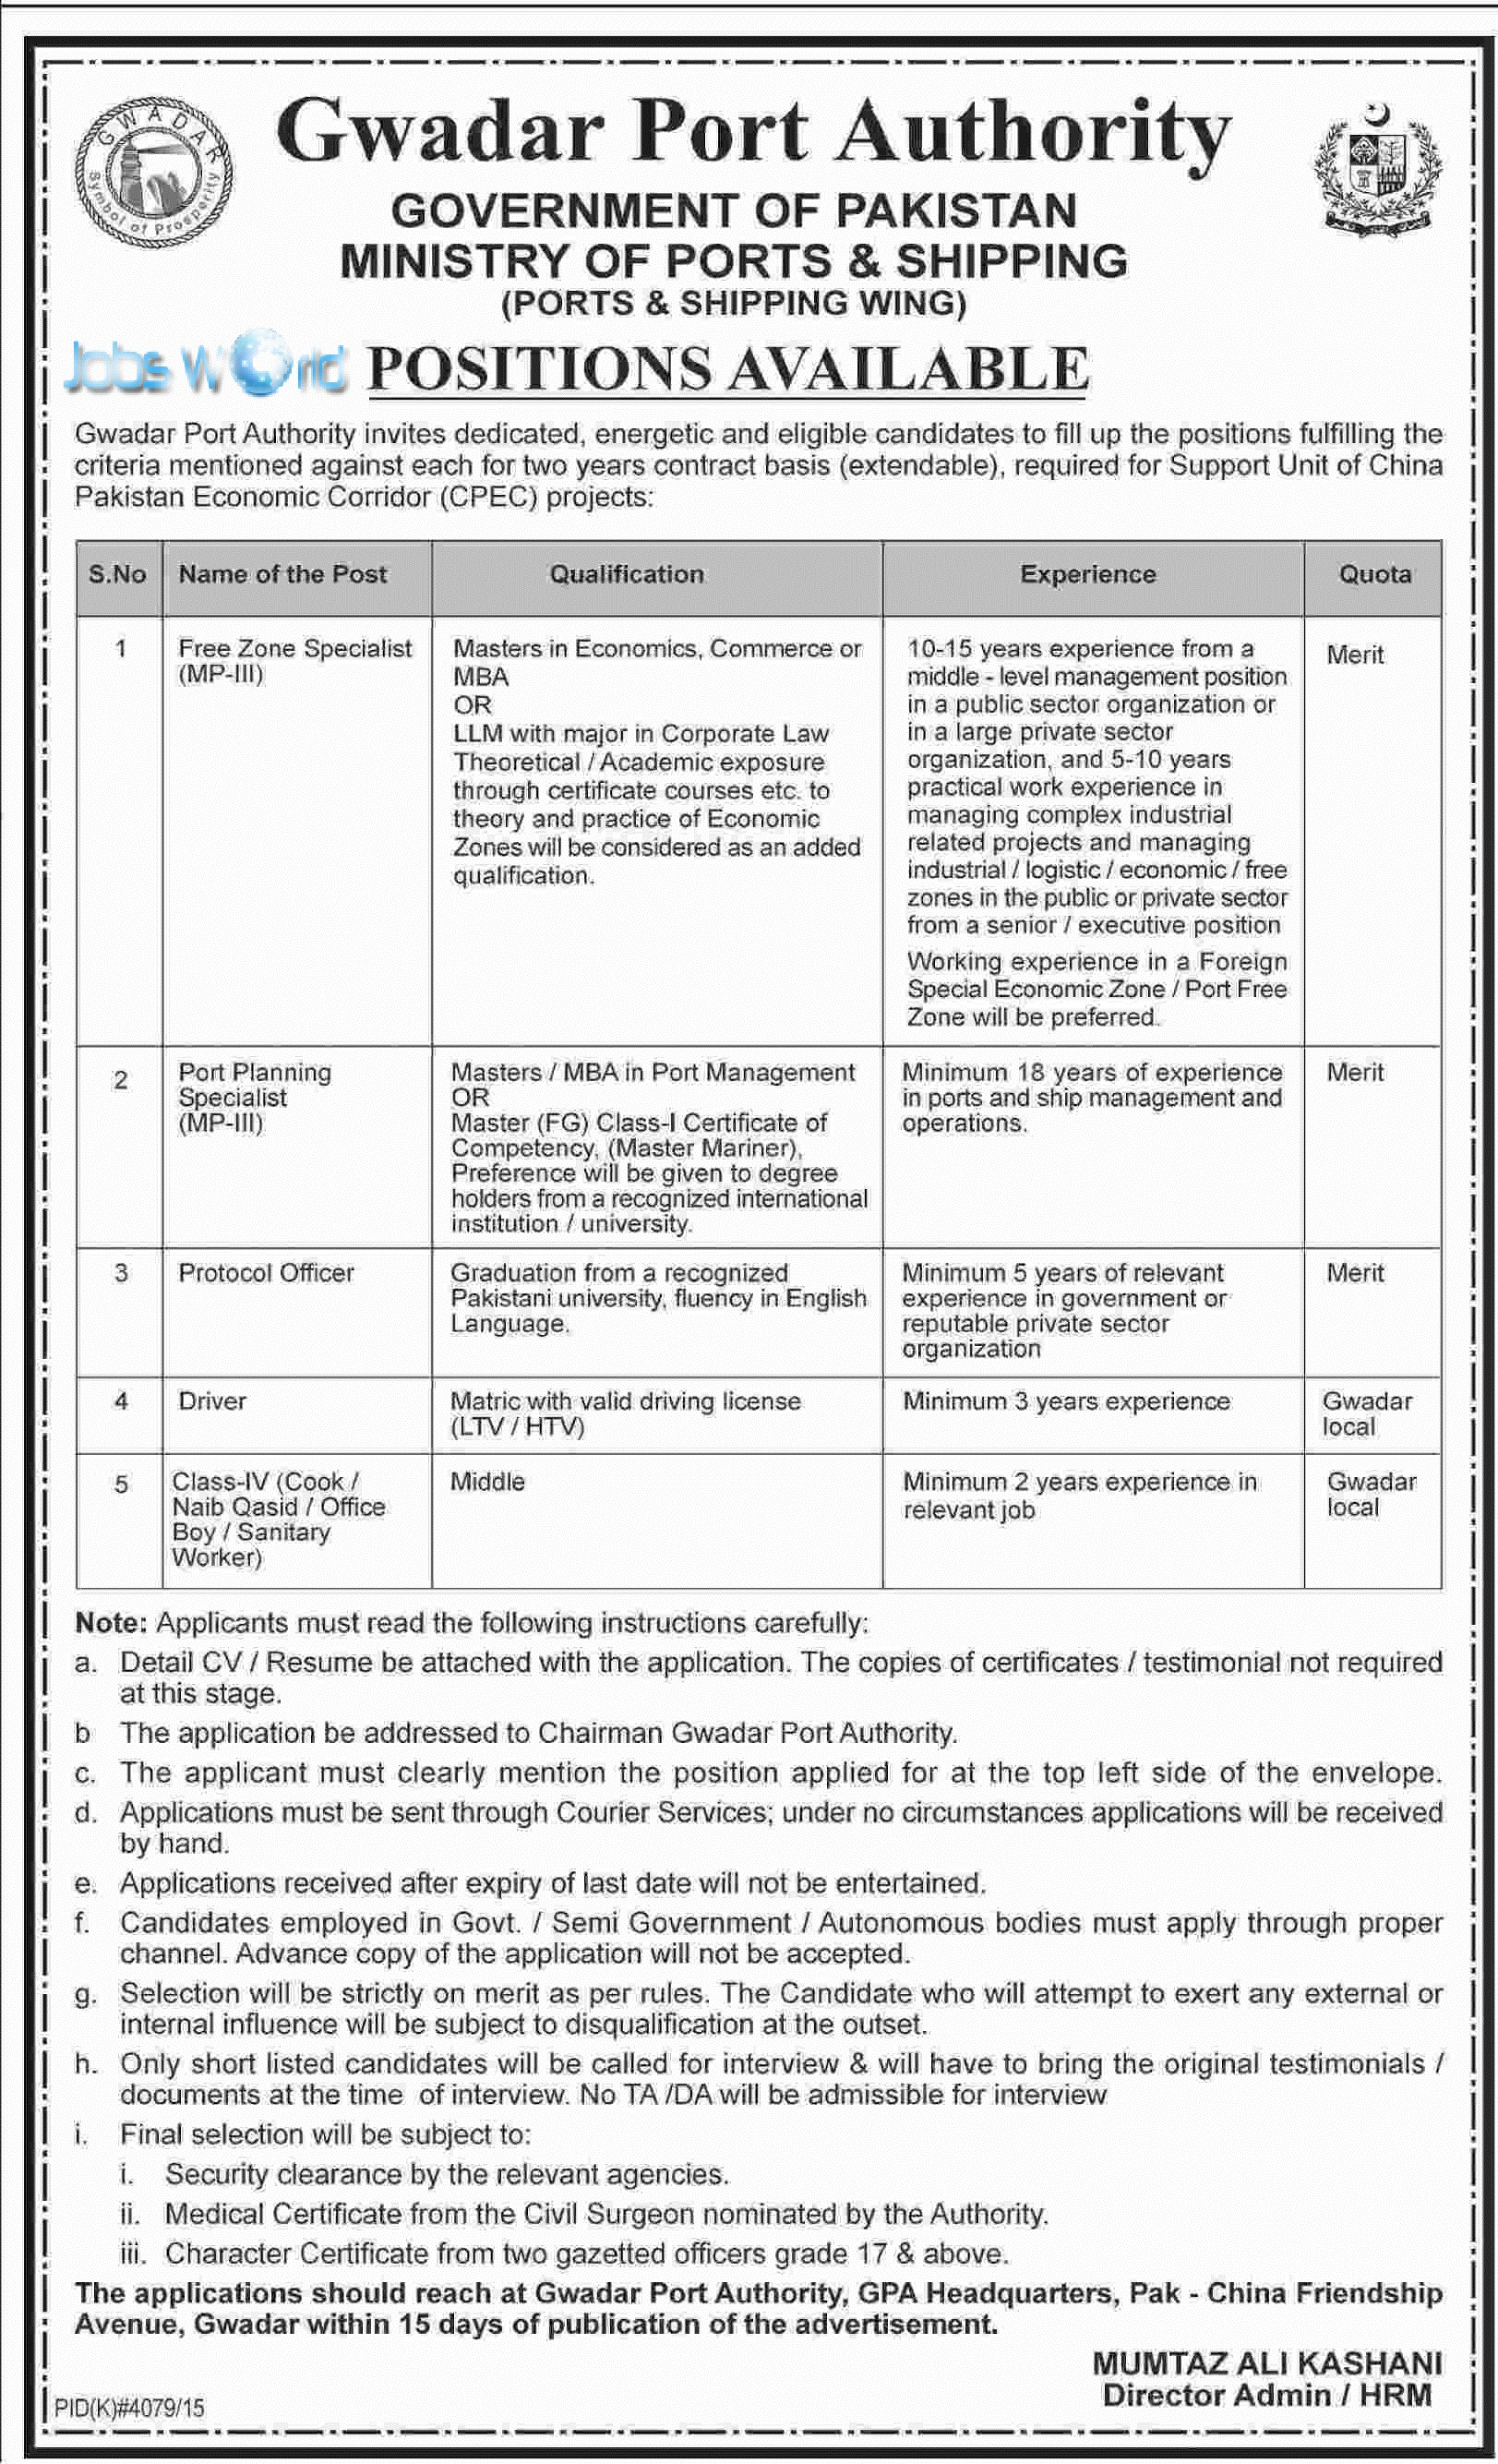 gwadar port authority jobs 2016 ministry of ports shipping gwadar port authority jobs 2016 ministry of ports shipping jobsworld